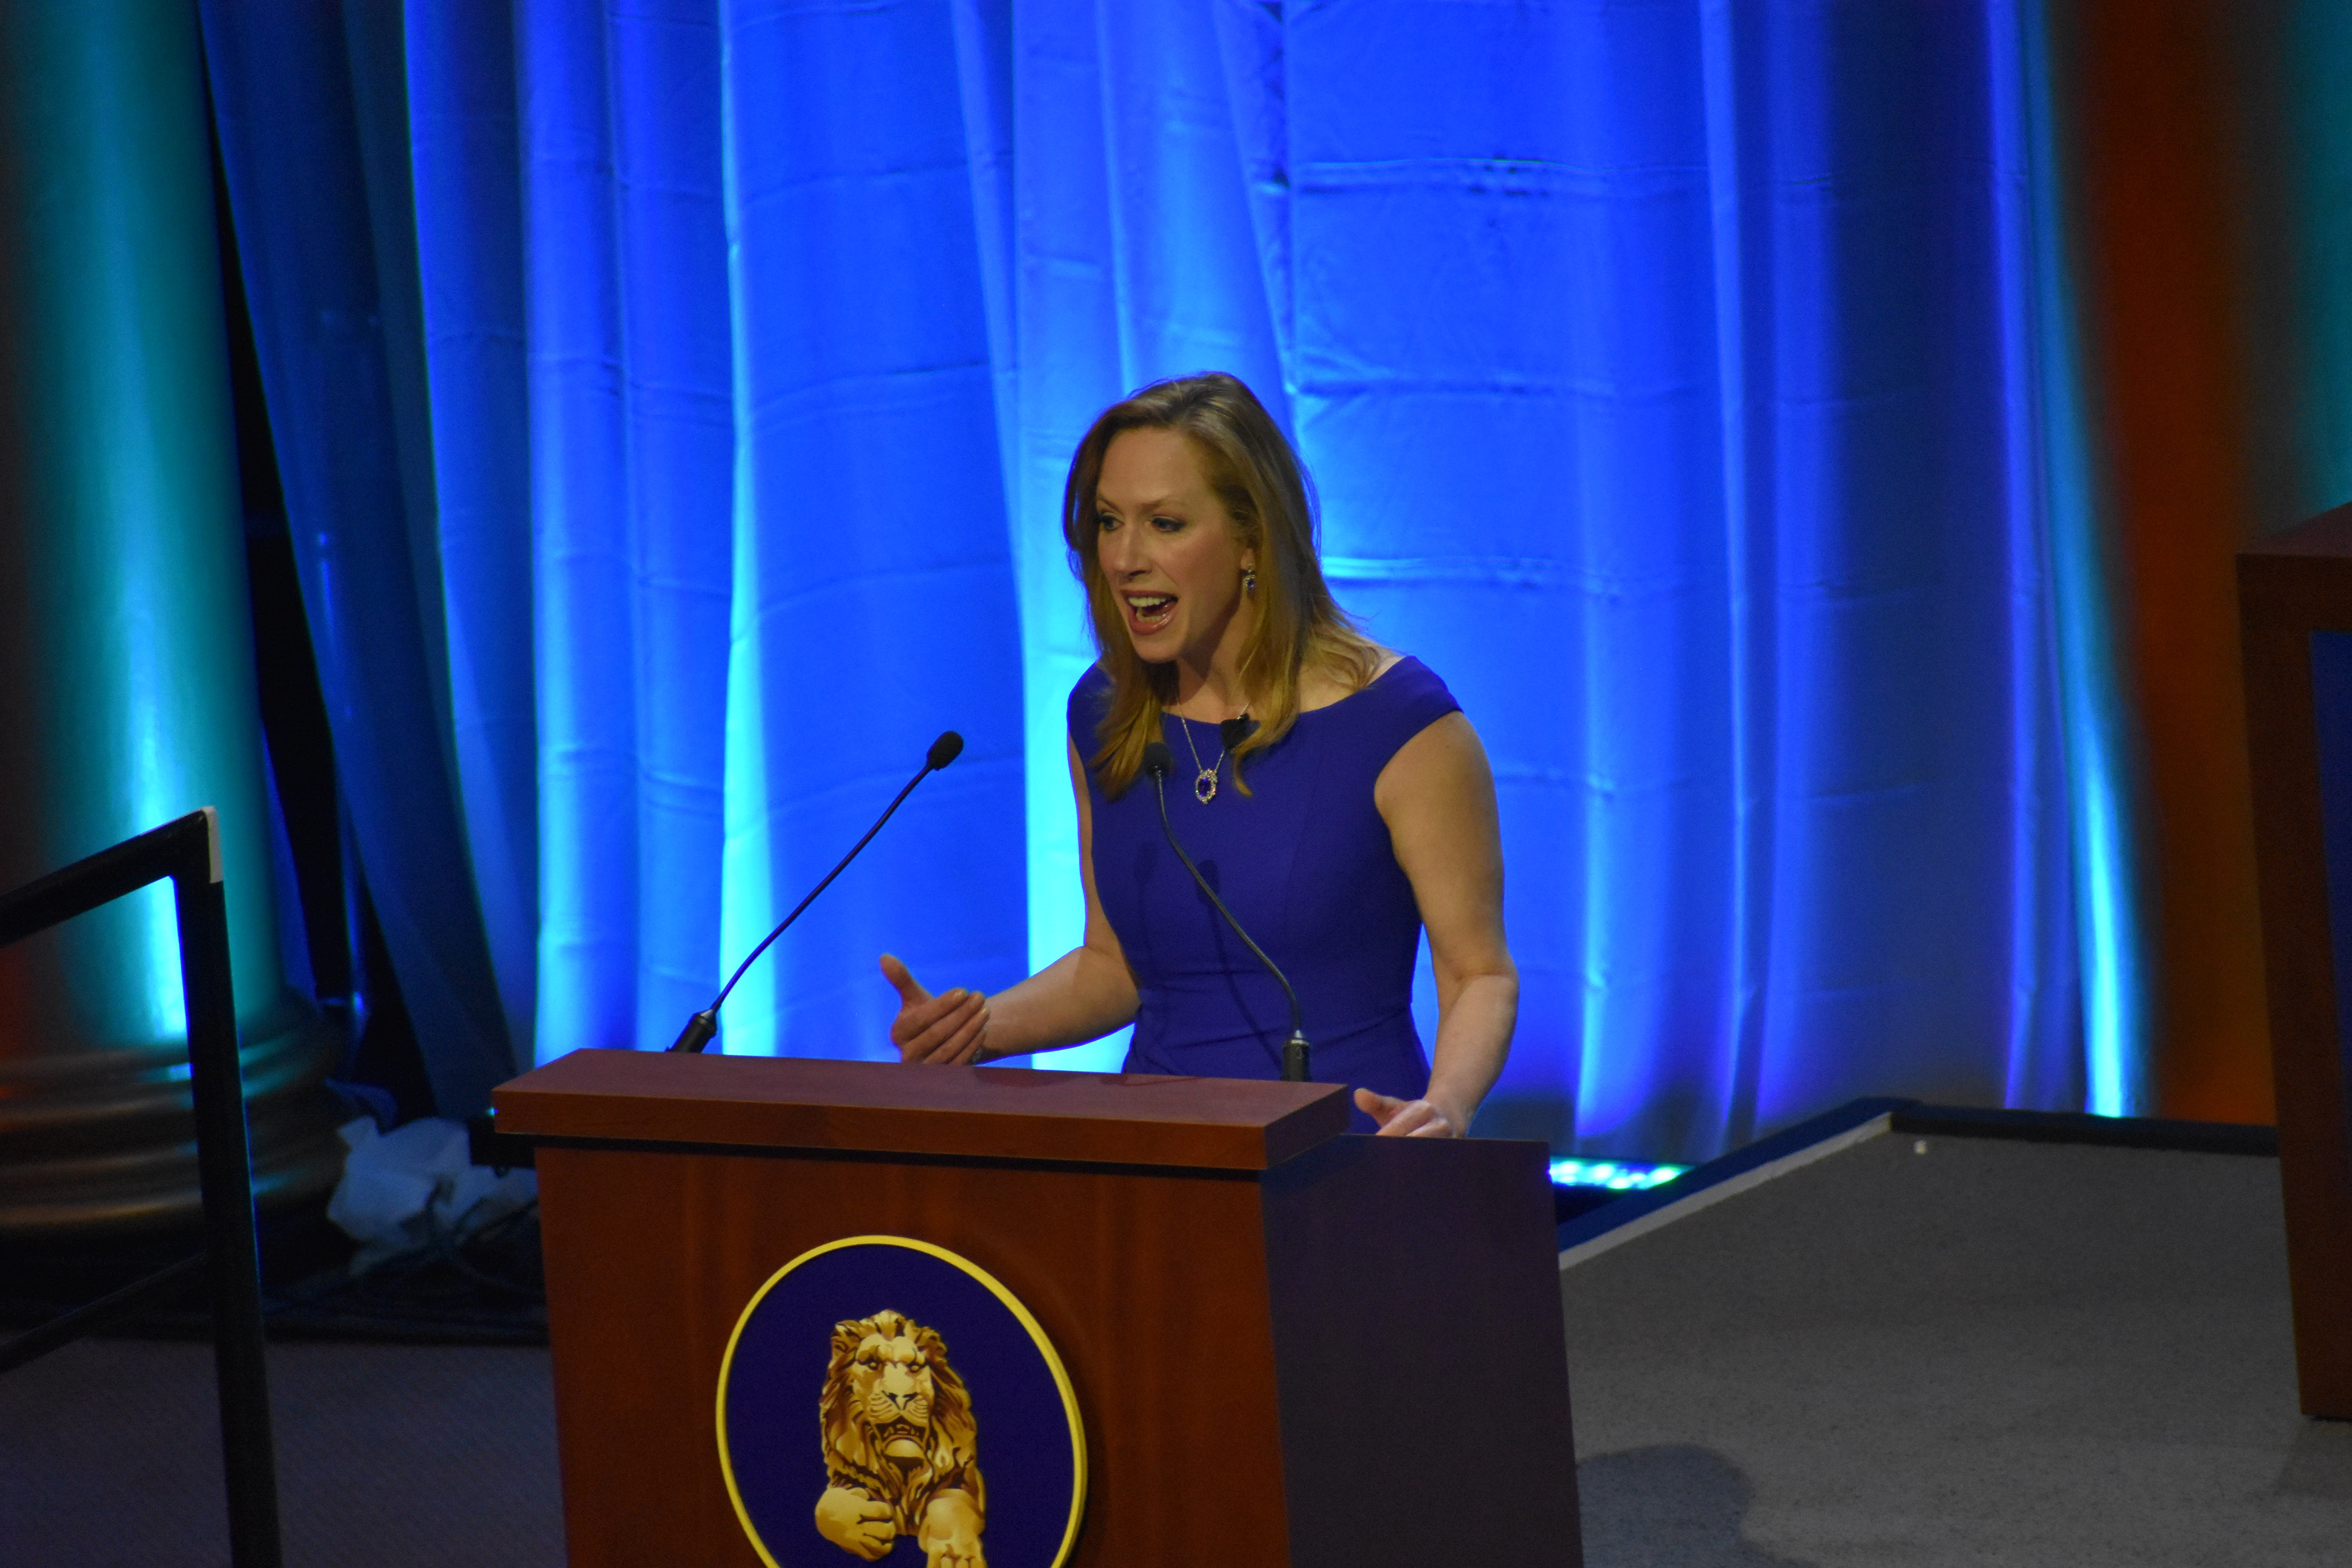 Kim Strassel The Daily Caller photographer